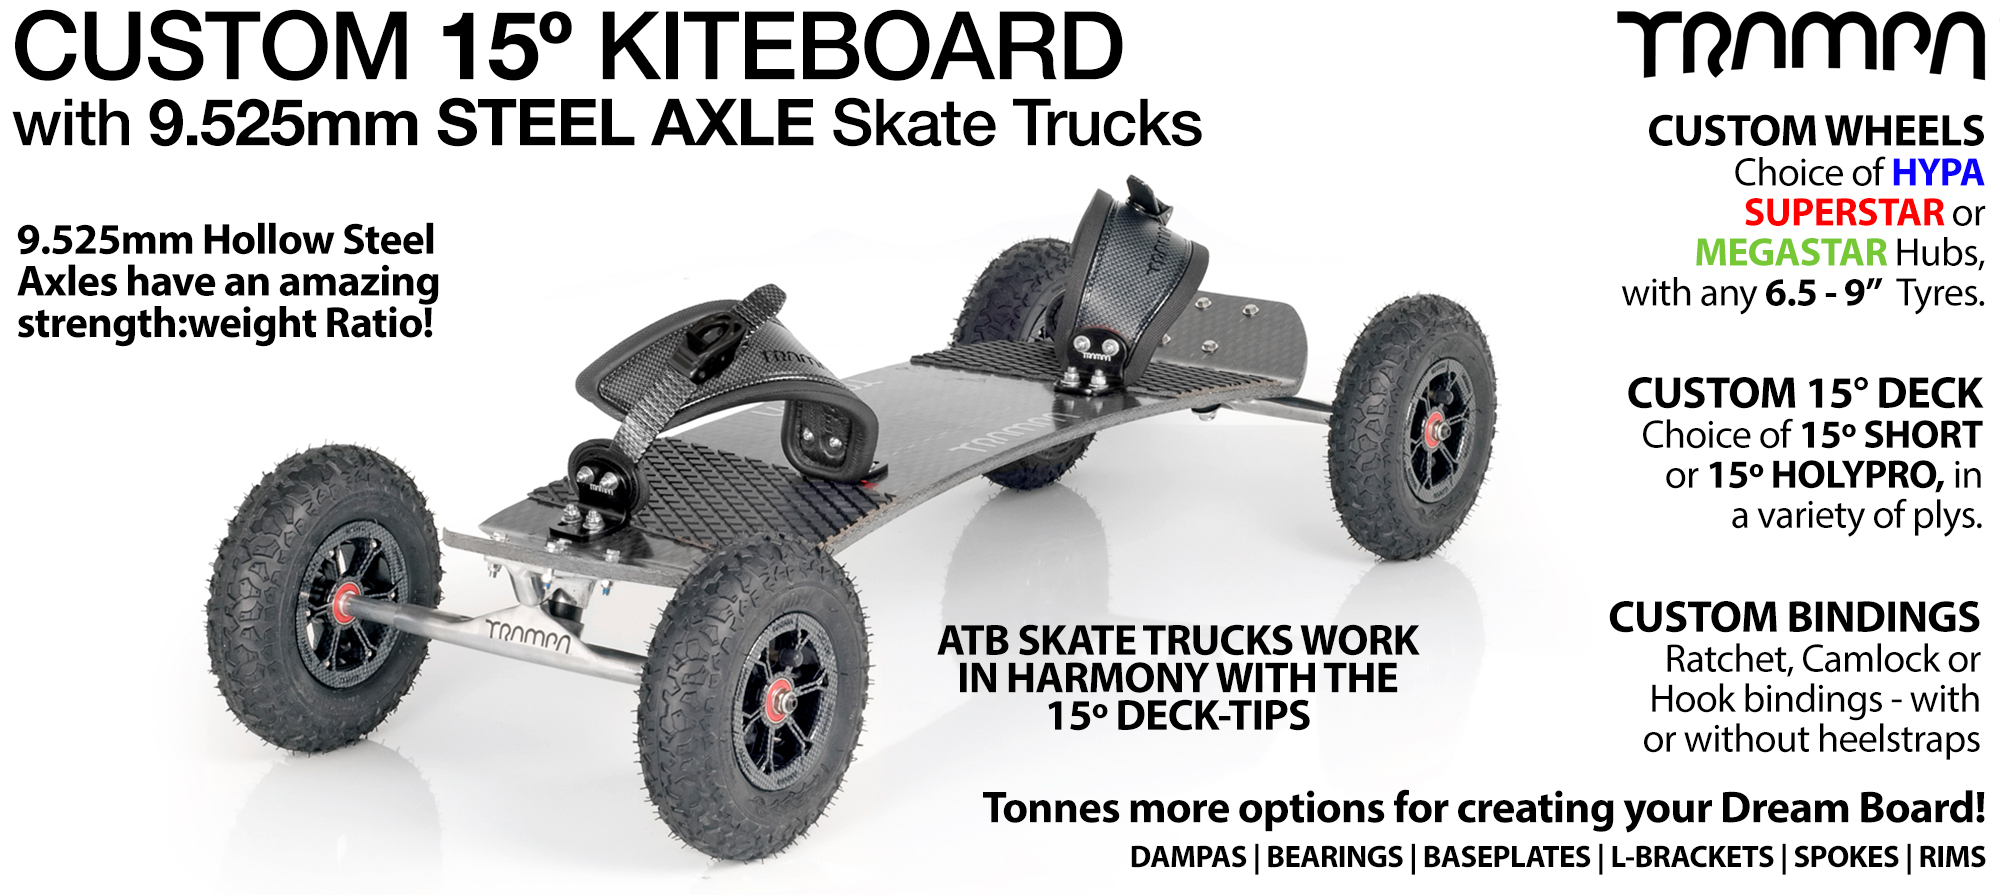 TRAMPA Kiteboard - 9.525mm Axle Skate Trucks